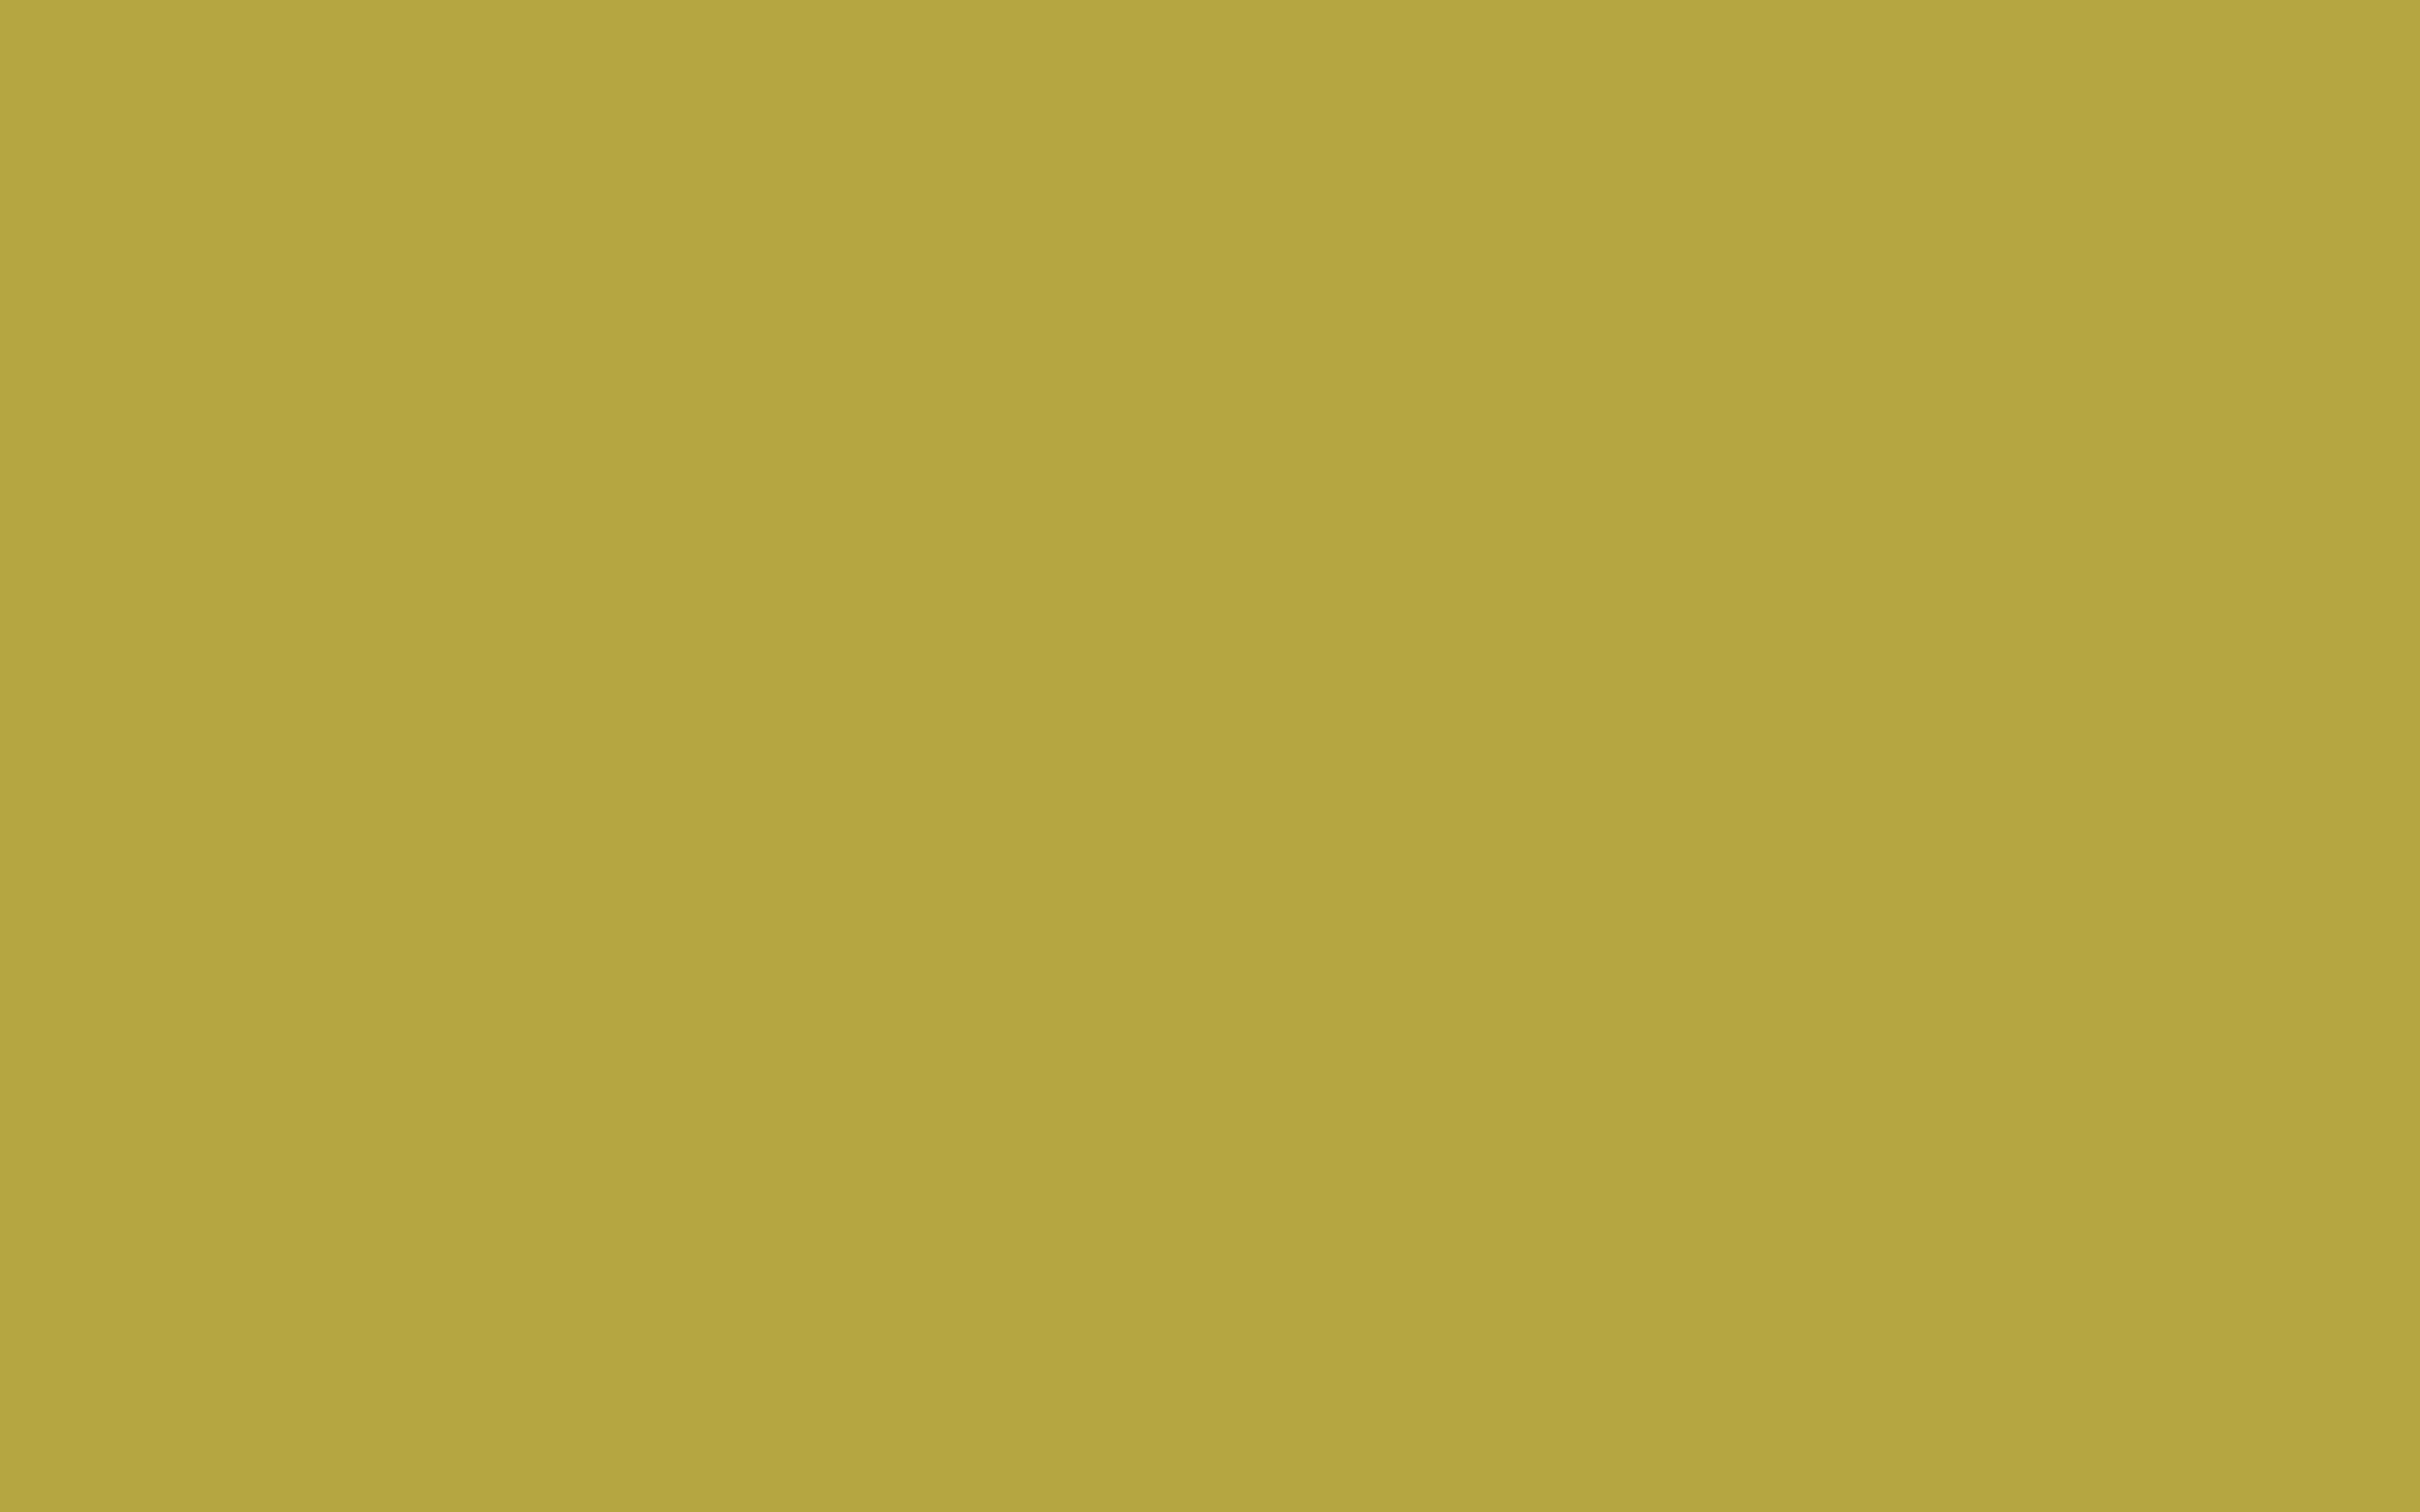 2560x1600 Brass Solid Color Background